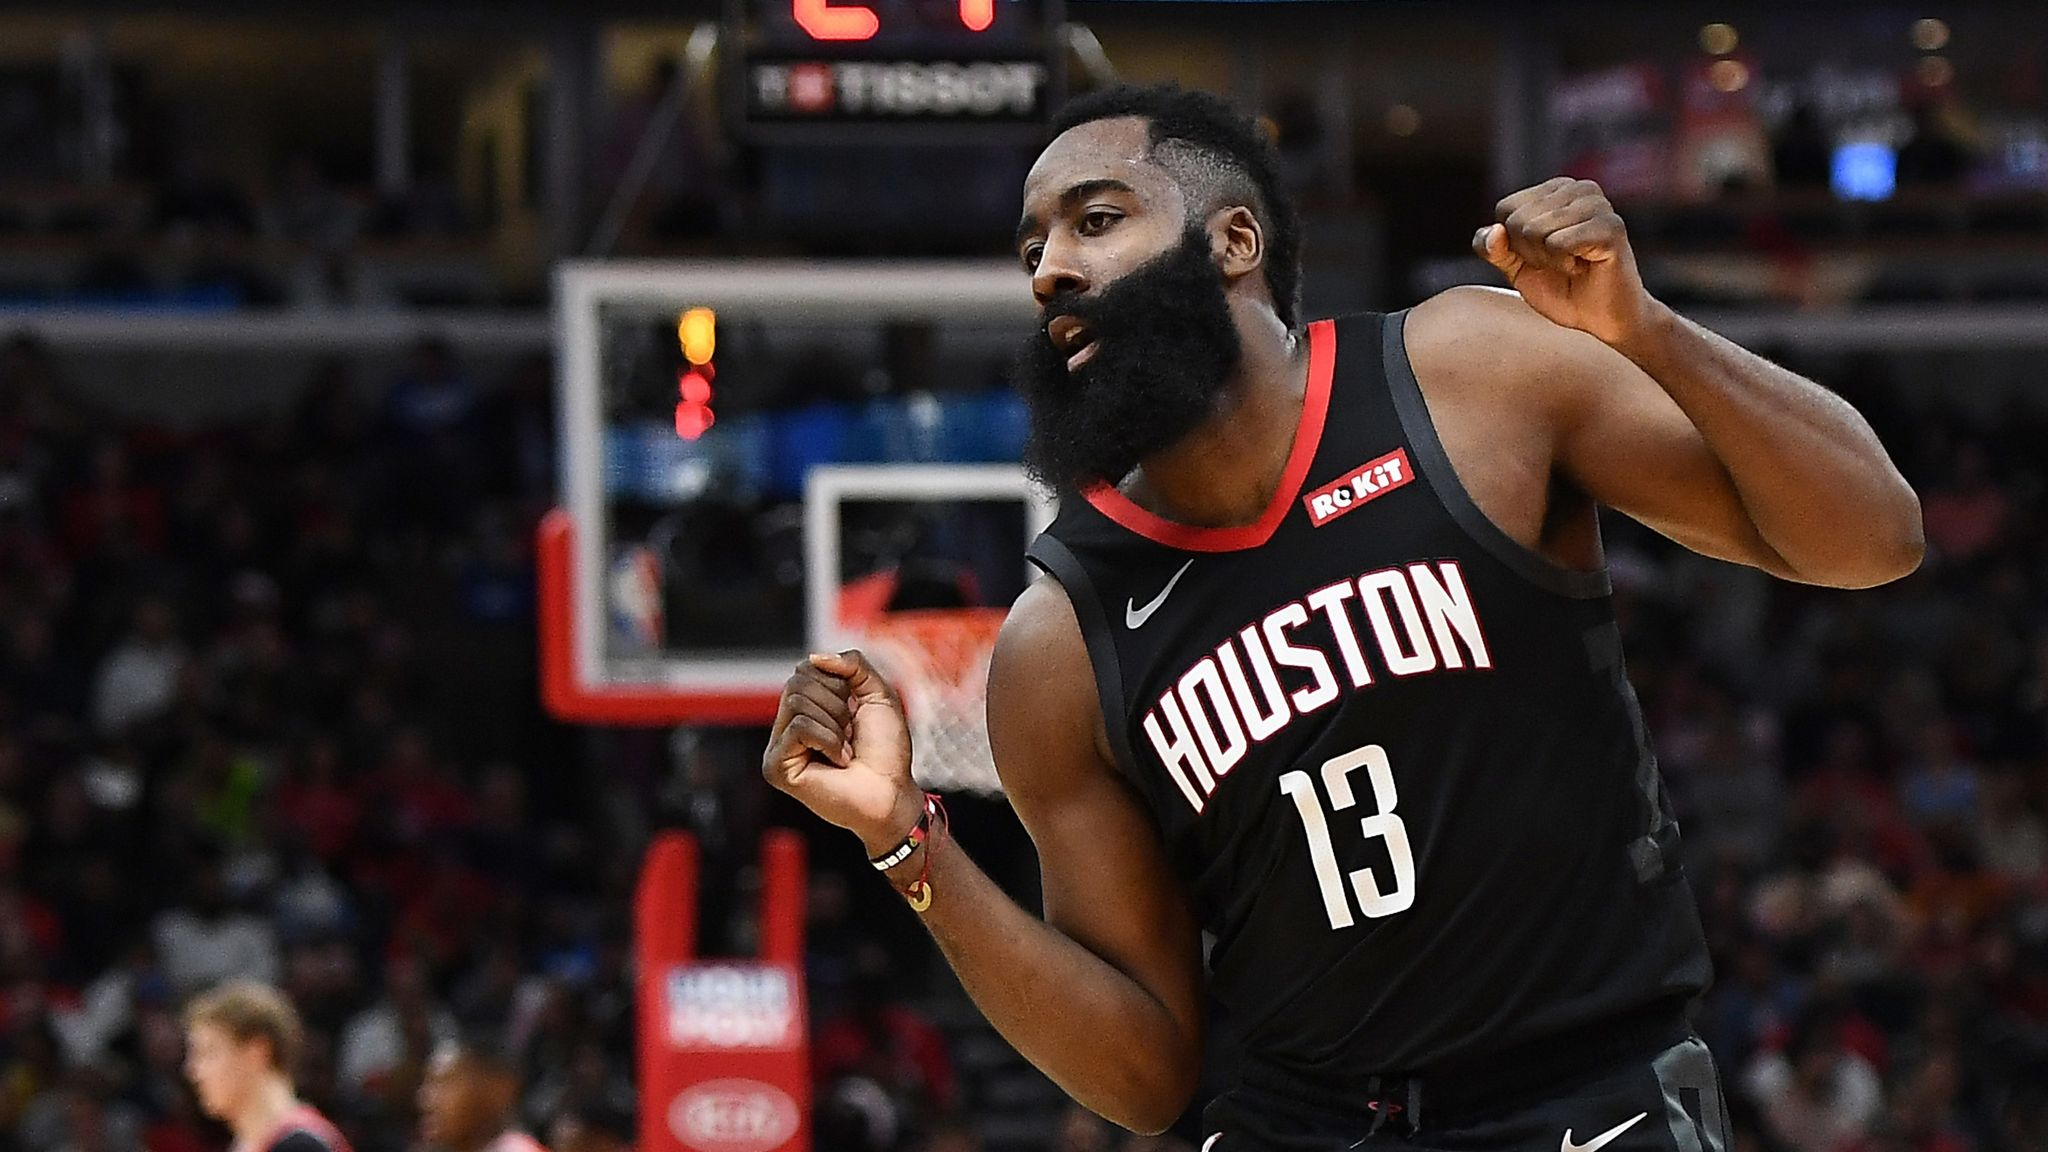 Ovie Soko says James Harden is 'unbelievable' but doesn't see Rockets as NBA title winners